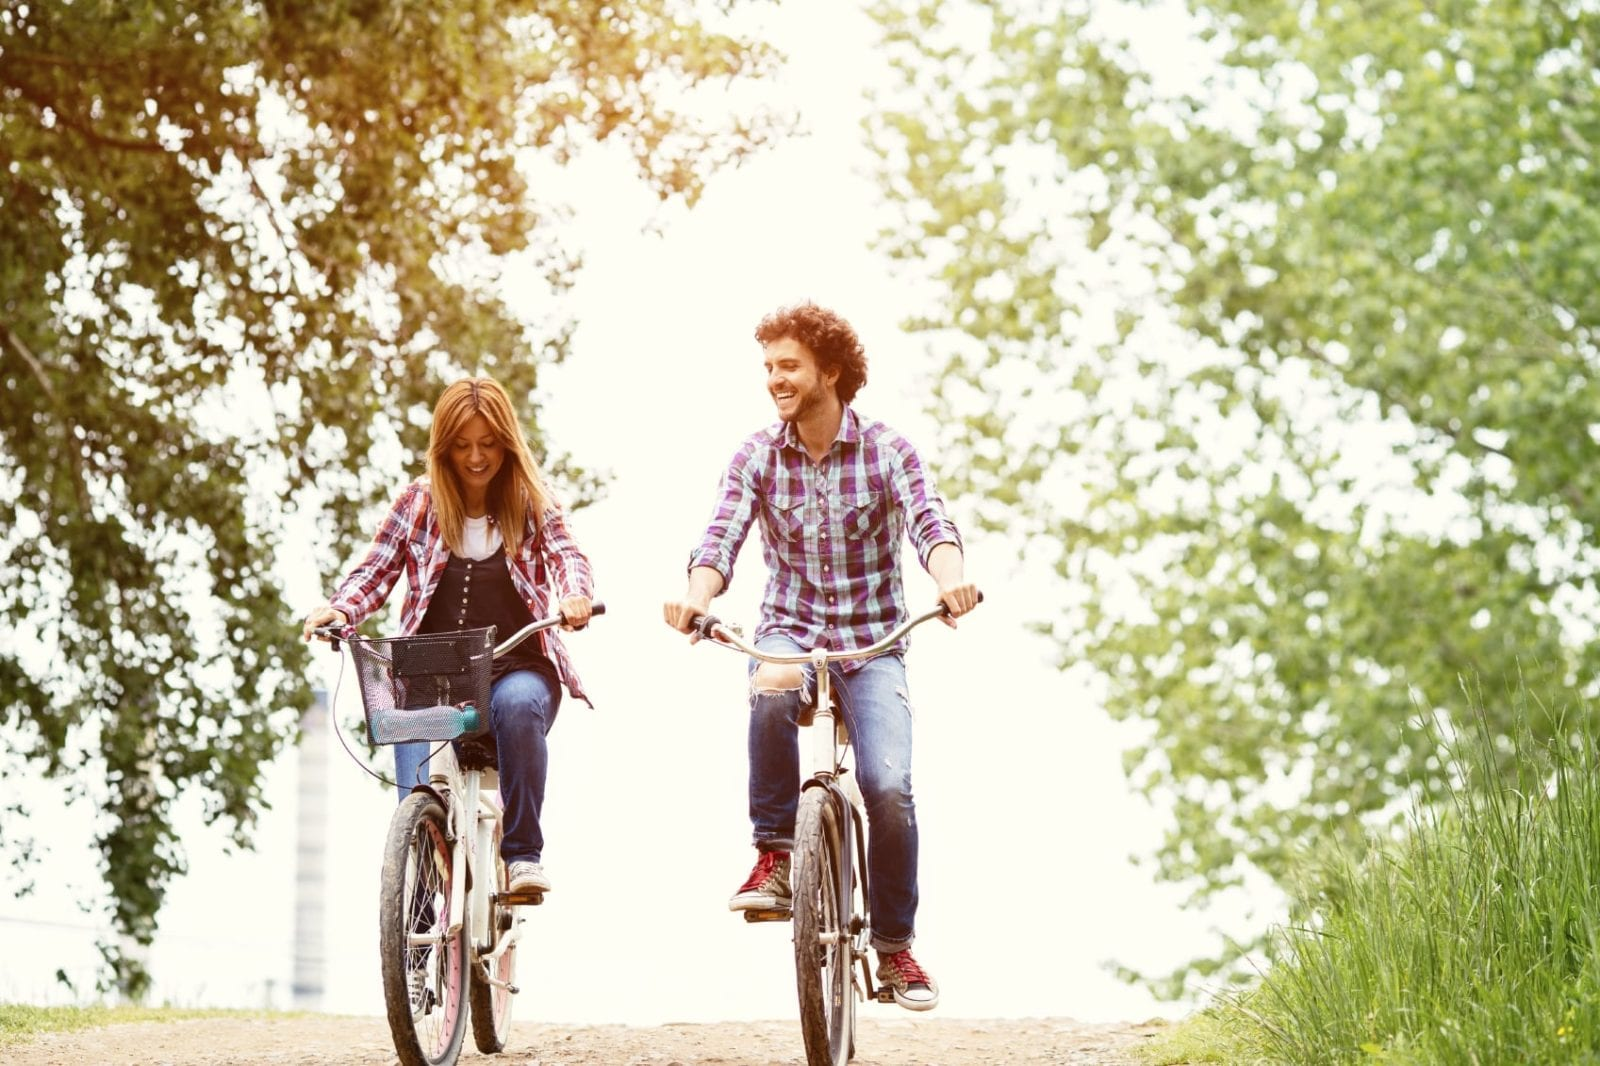 Young Couple Riding Their Bikes On A Dirt Road Stock Photo